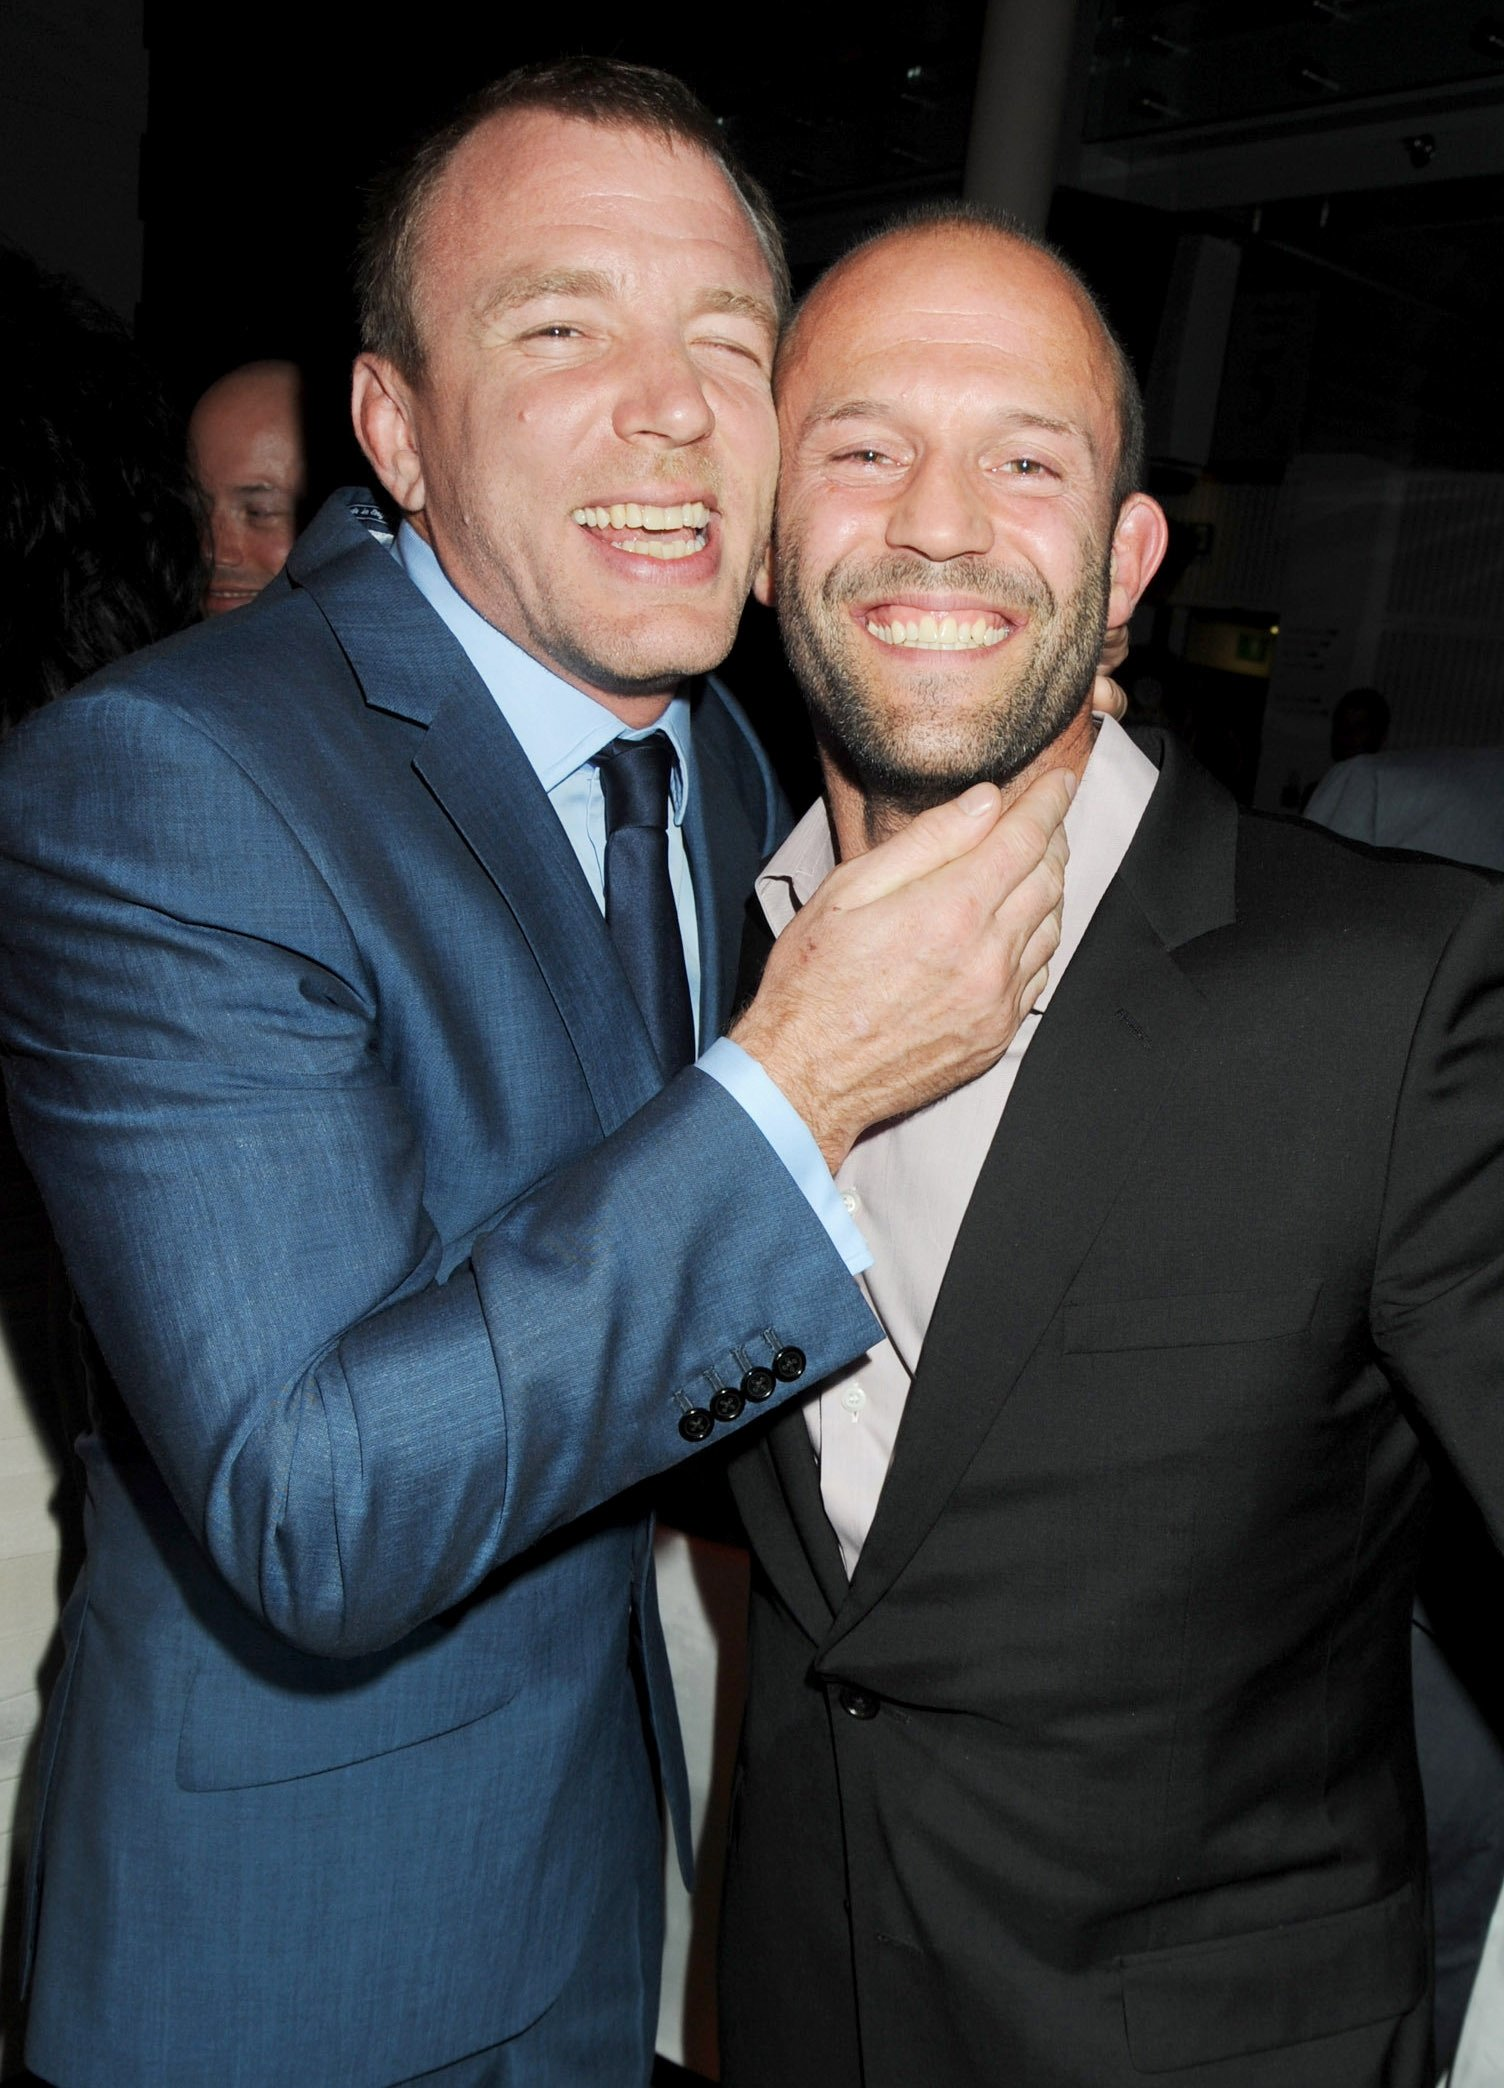 Guy Ritchie and Jason Statham attend the 2009 GQ Men Of The Year Awards at the Royal Opera House, London, England, Sept. 8, 2009.  (Getty Images)